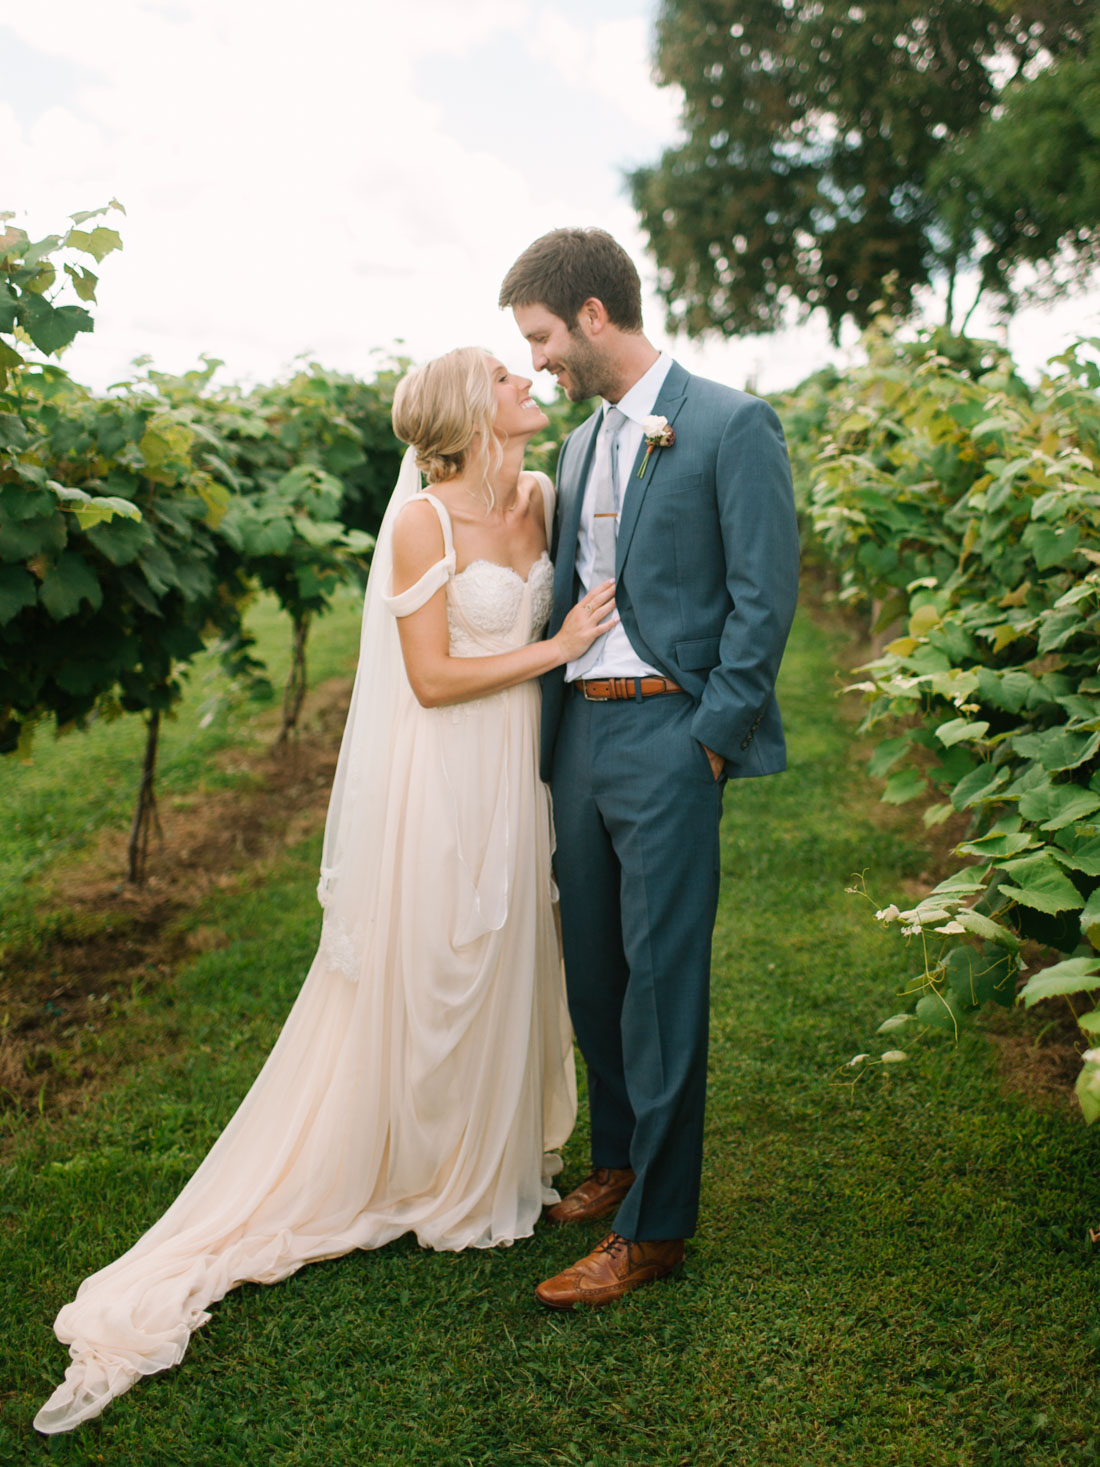 kateweinsteinphoto_overthevines_wedding-101.jpg